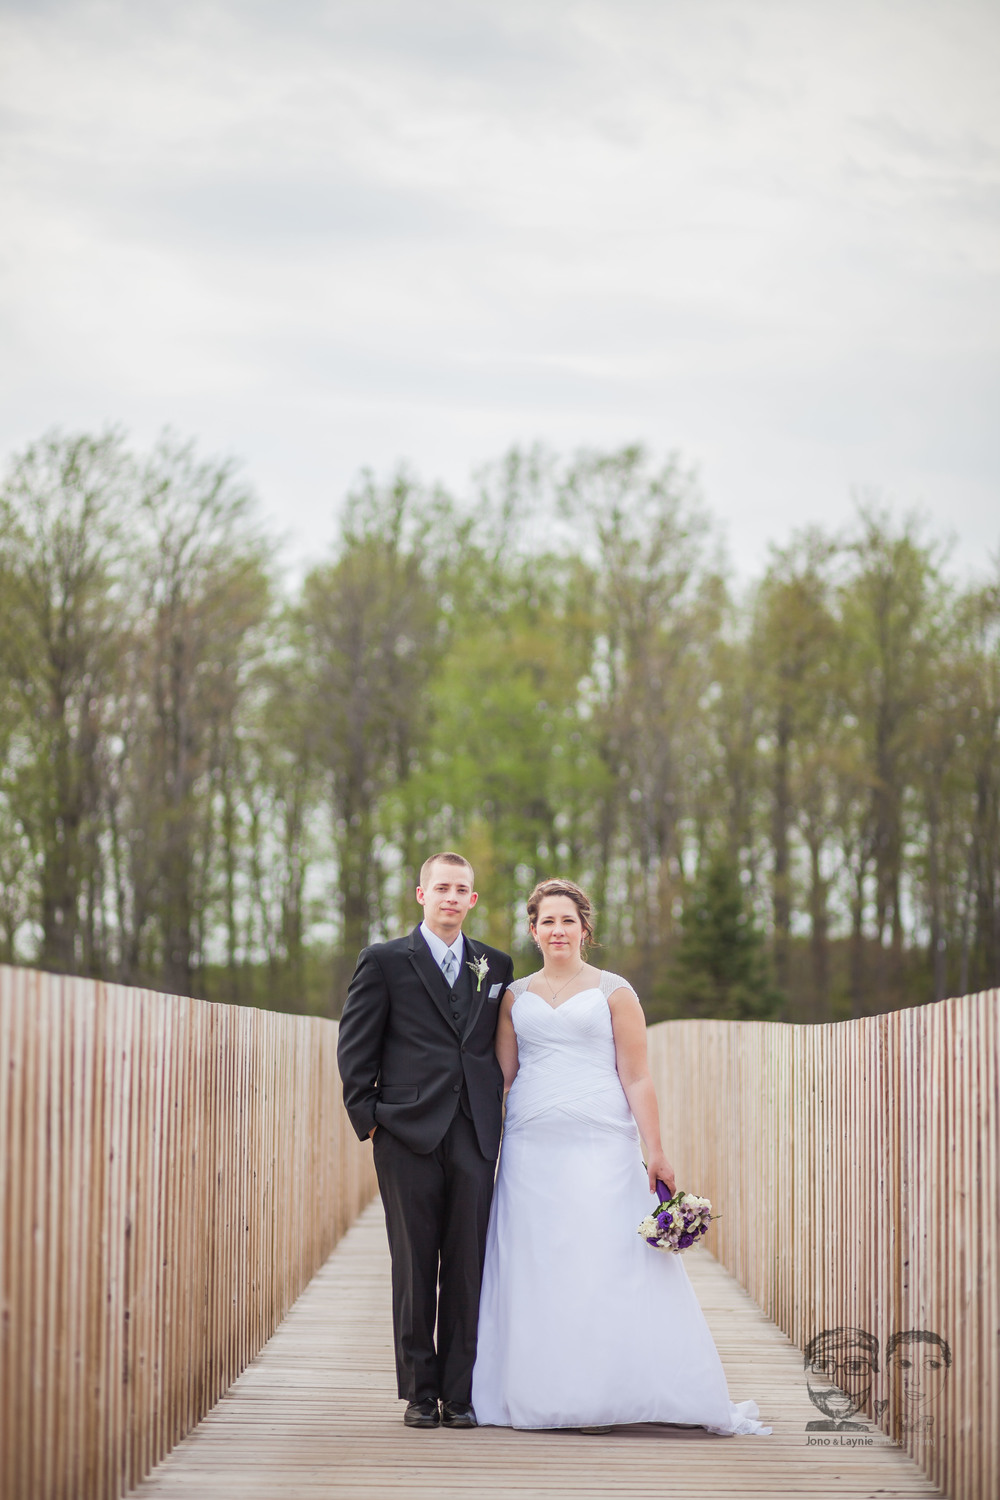 34Toronto Wedding Photographers and Videographers-Jono & Laynie Co.-Orangeville Wedding.jpg